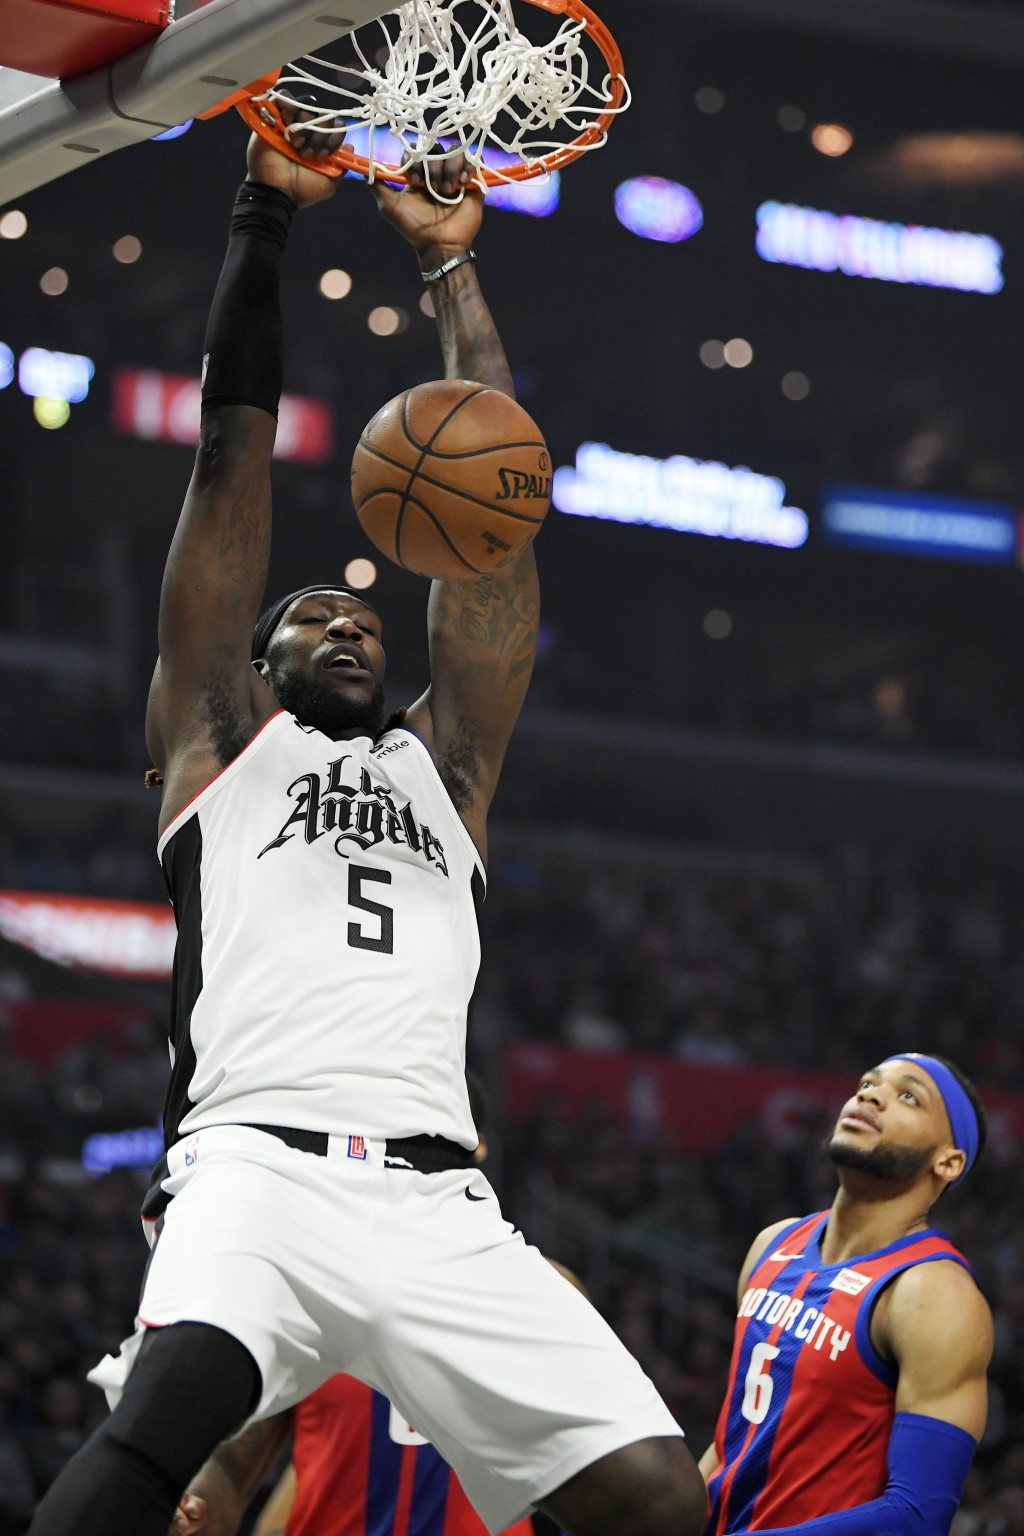 Los Angeles Clippers forward Montrezl Harrell dunks as Detroit Pistons guard Bruce Brown watches during the first half of an NBA basketball game Thurs...